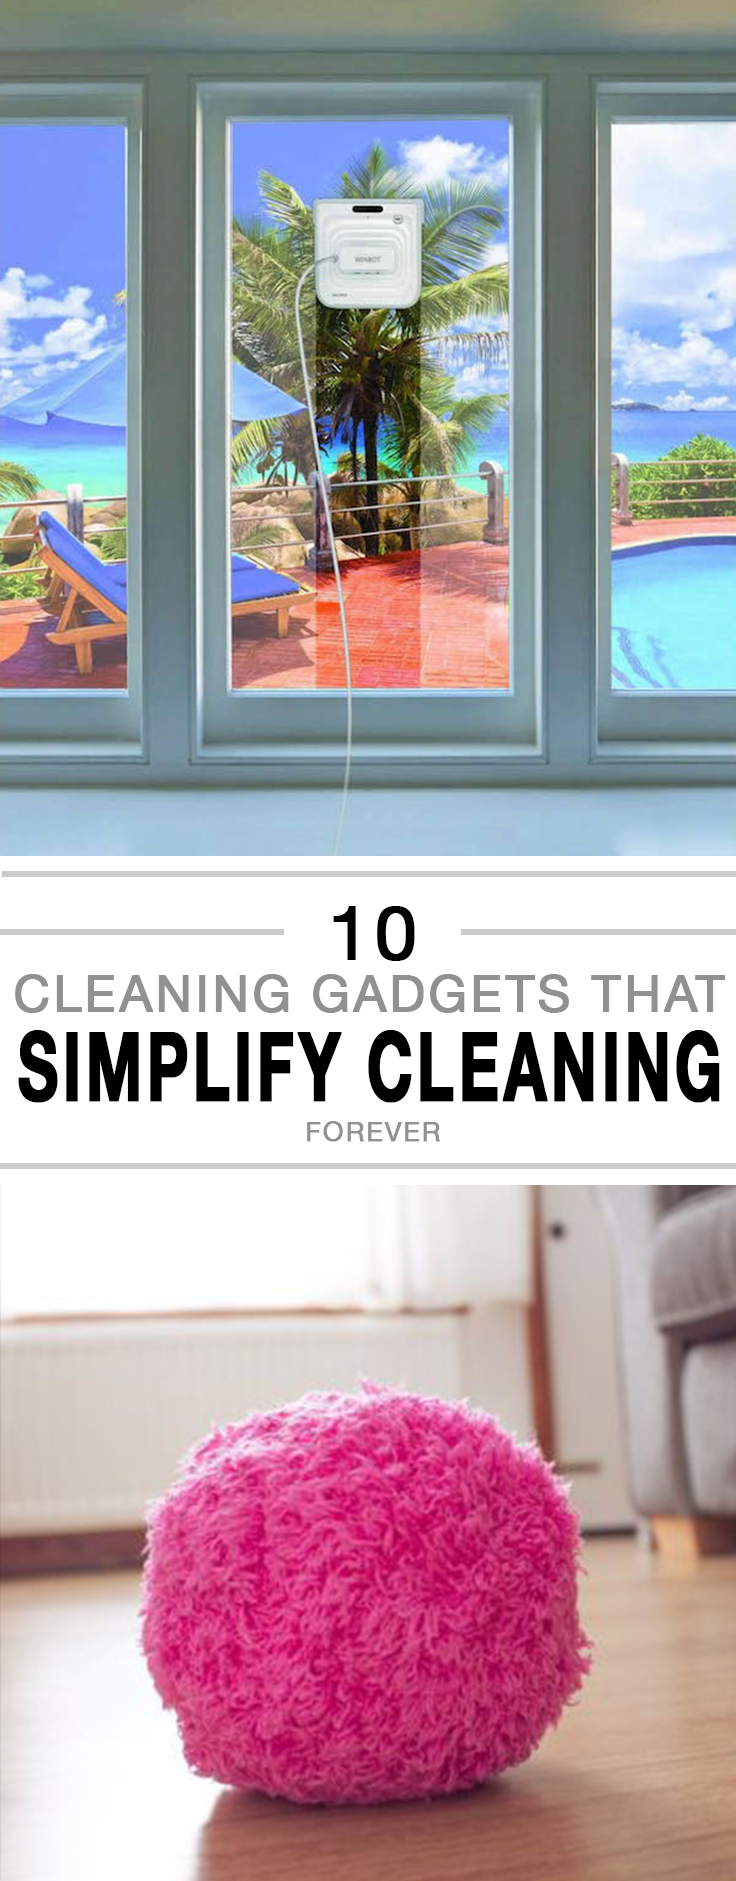 Cleaning gadgets, unique cleaning gadgets, cleaning tools, must have cleaning tools, cleaning, popular posts, clean home, how to have a clean home.